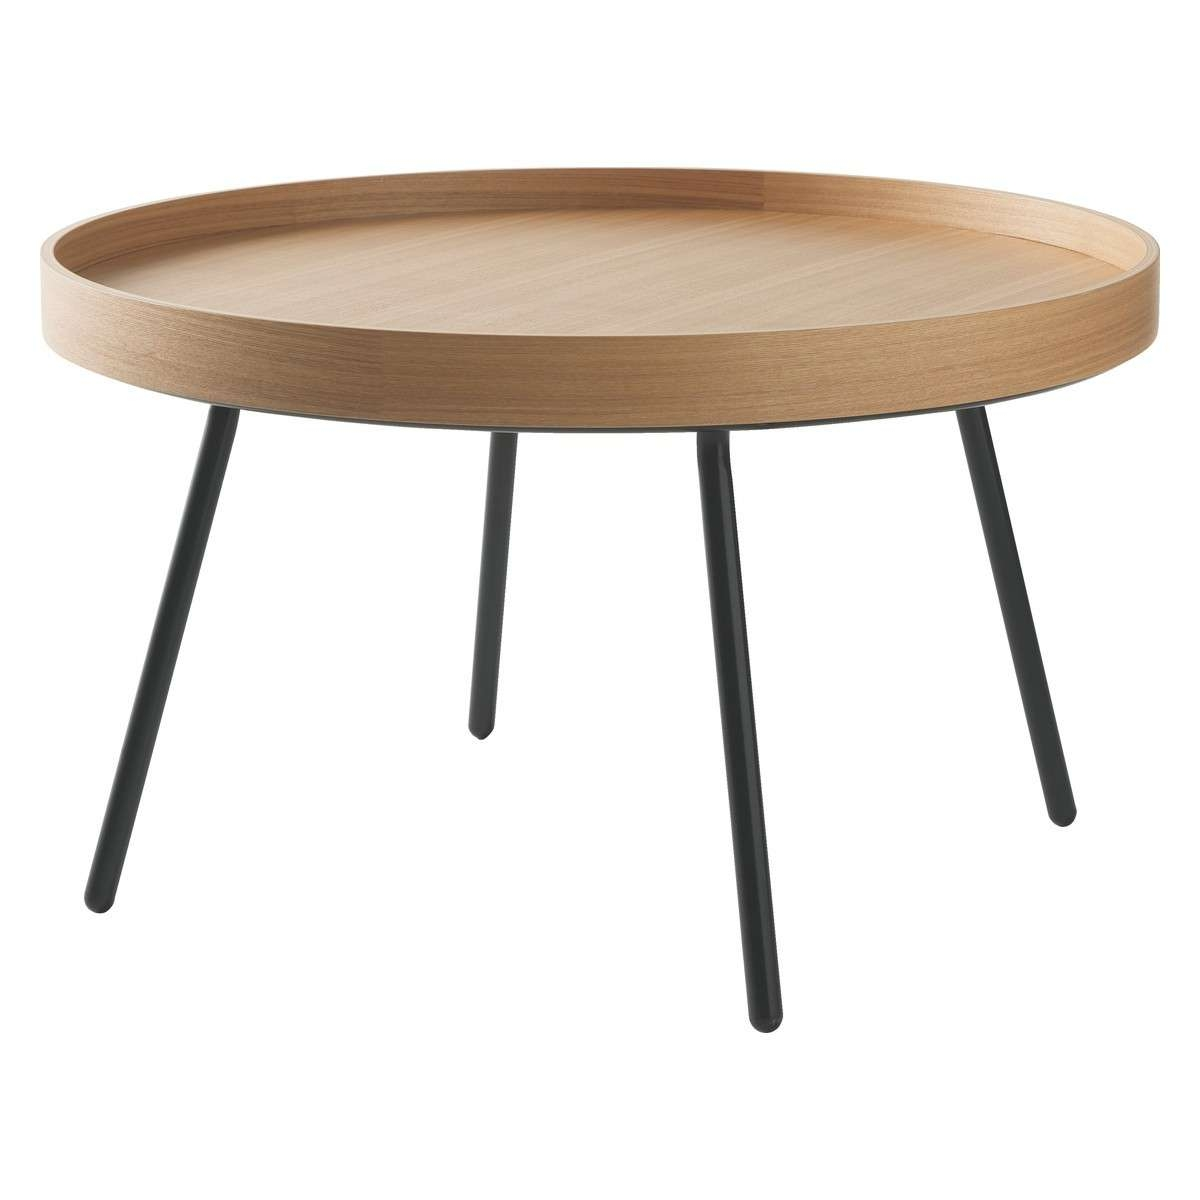 Photos Of Round Oak Coffee Tables Showing 2 20